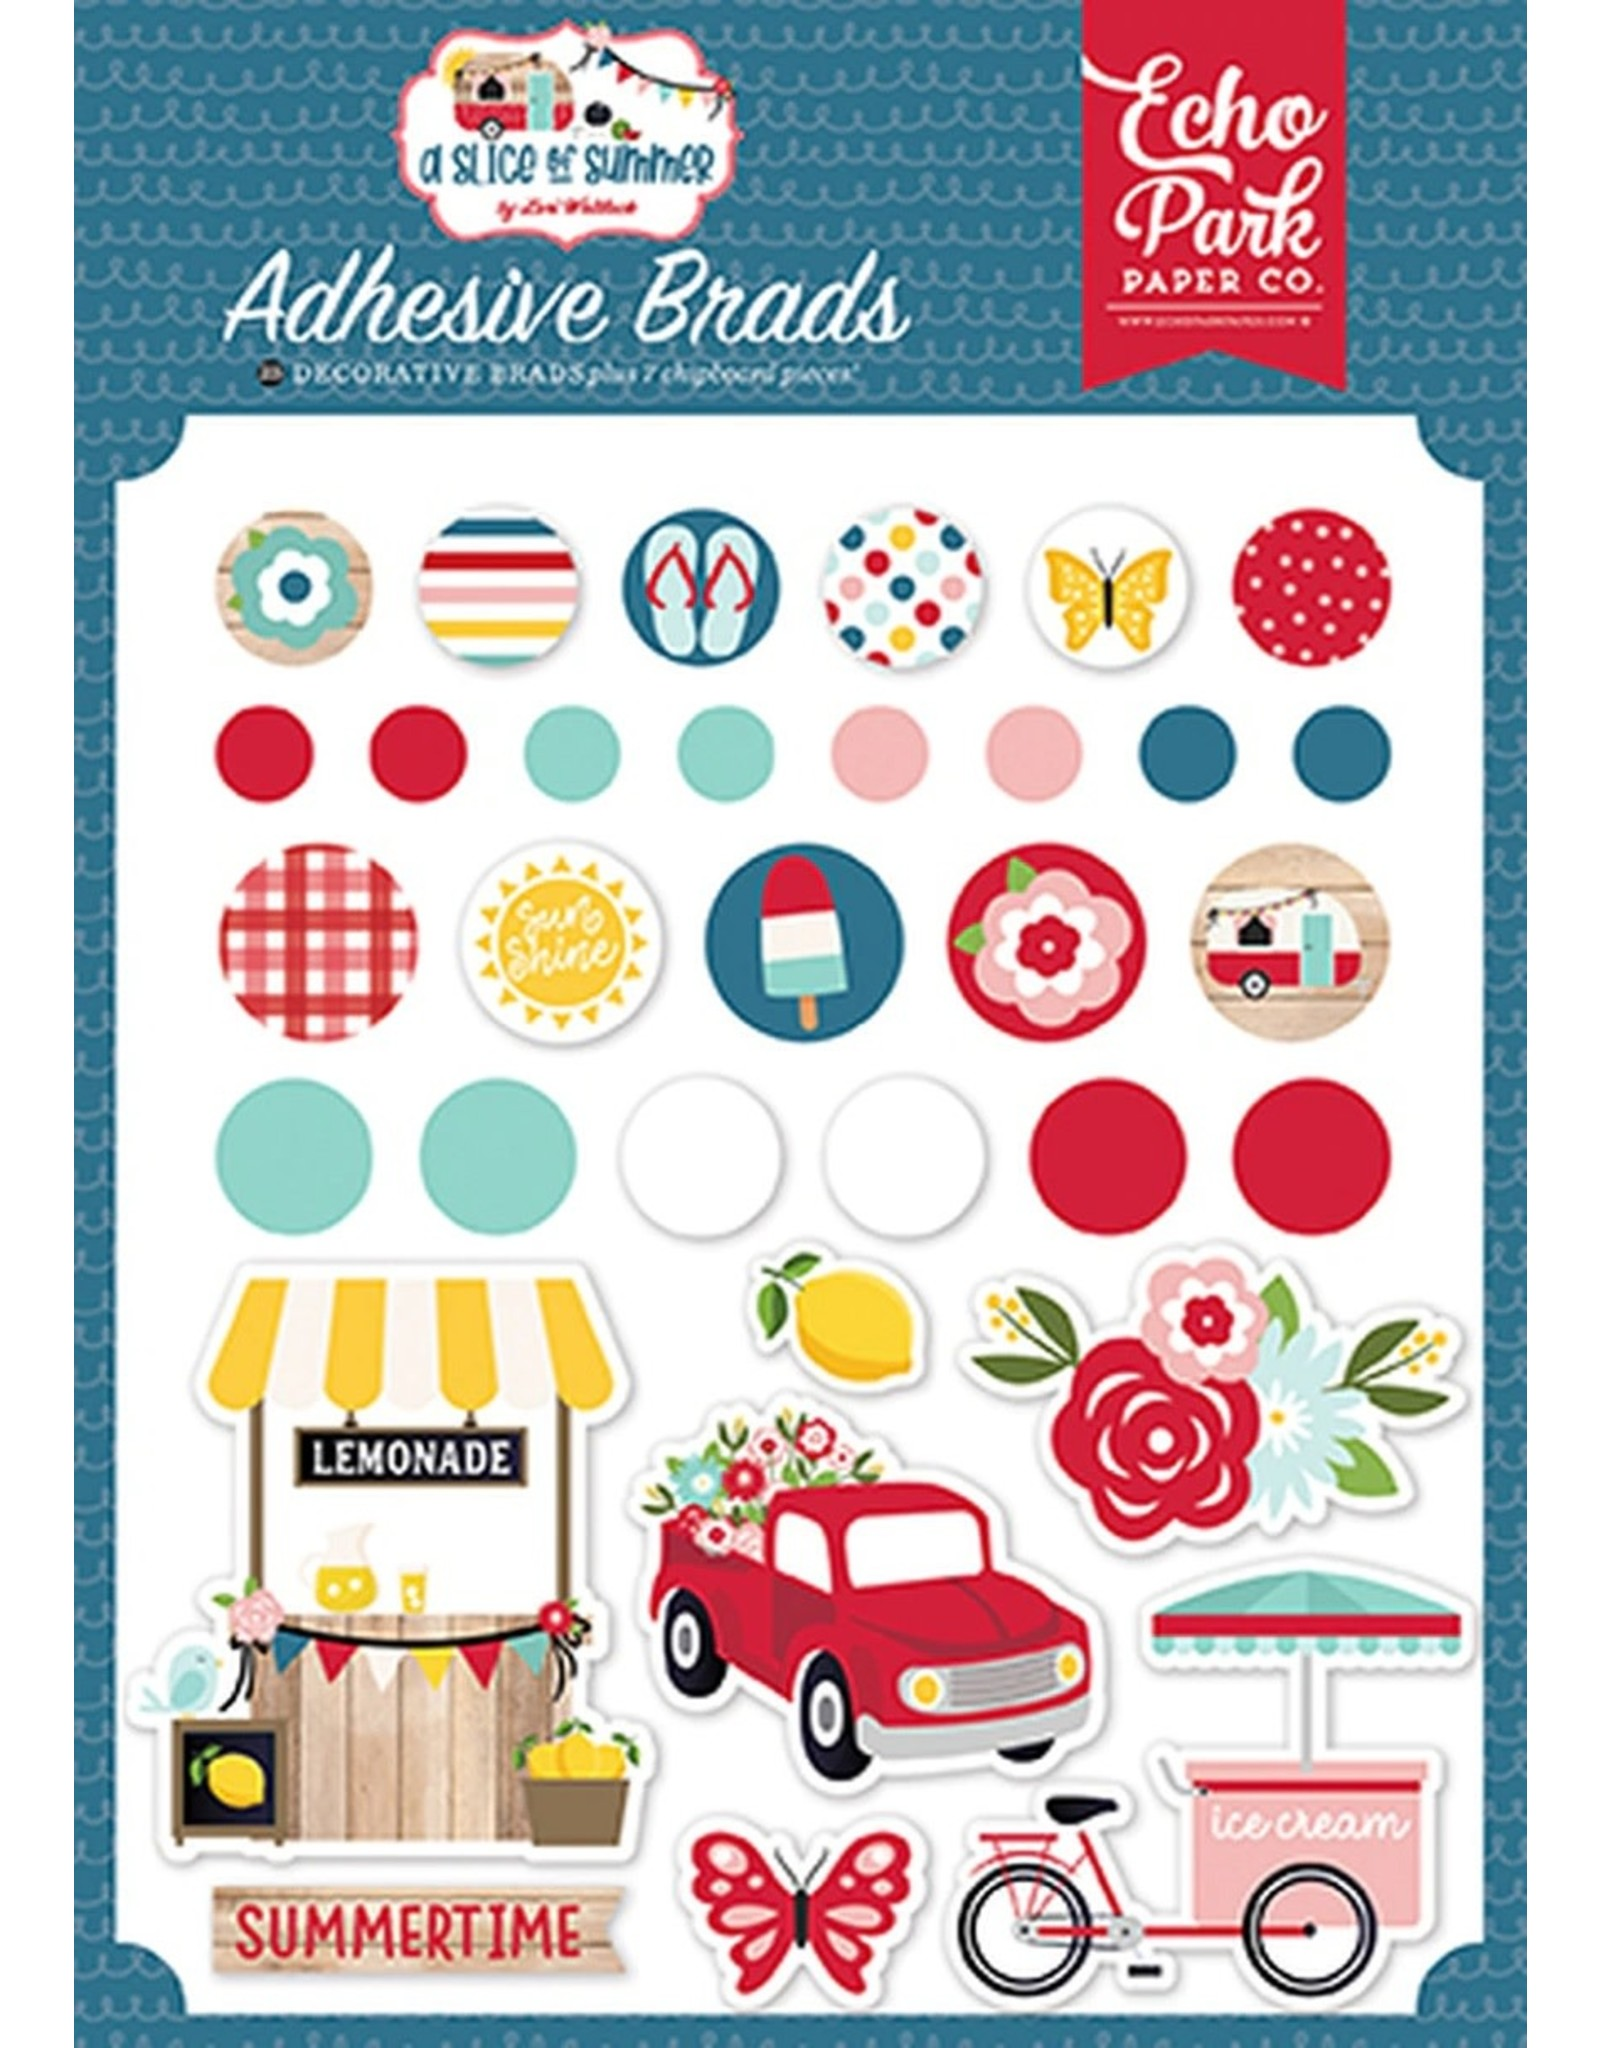 Echo Park A Slice of Summer - Adhesive Brads